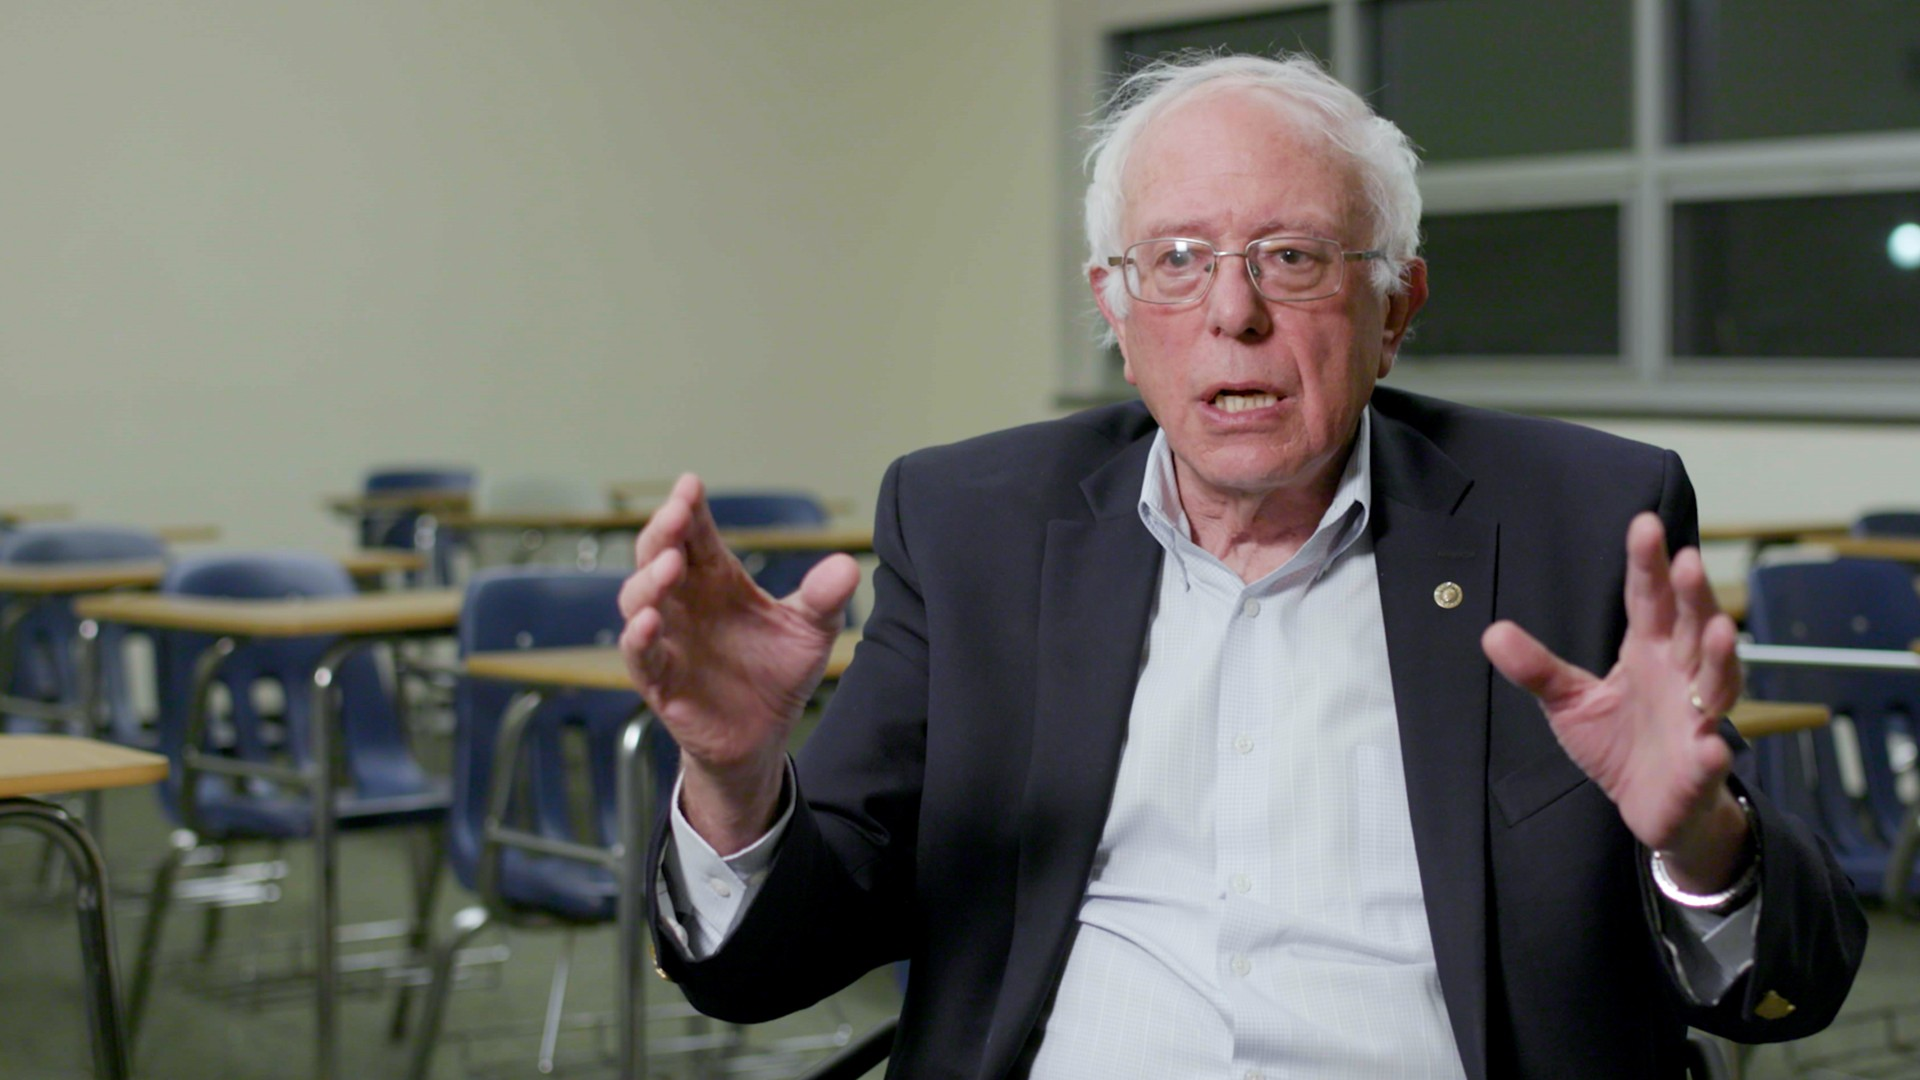 Bernie Sanders on Why the Time Is Now to Make College Tuition Free